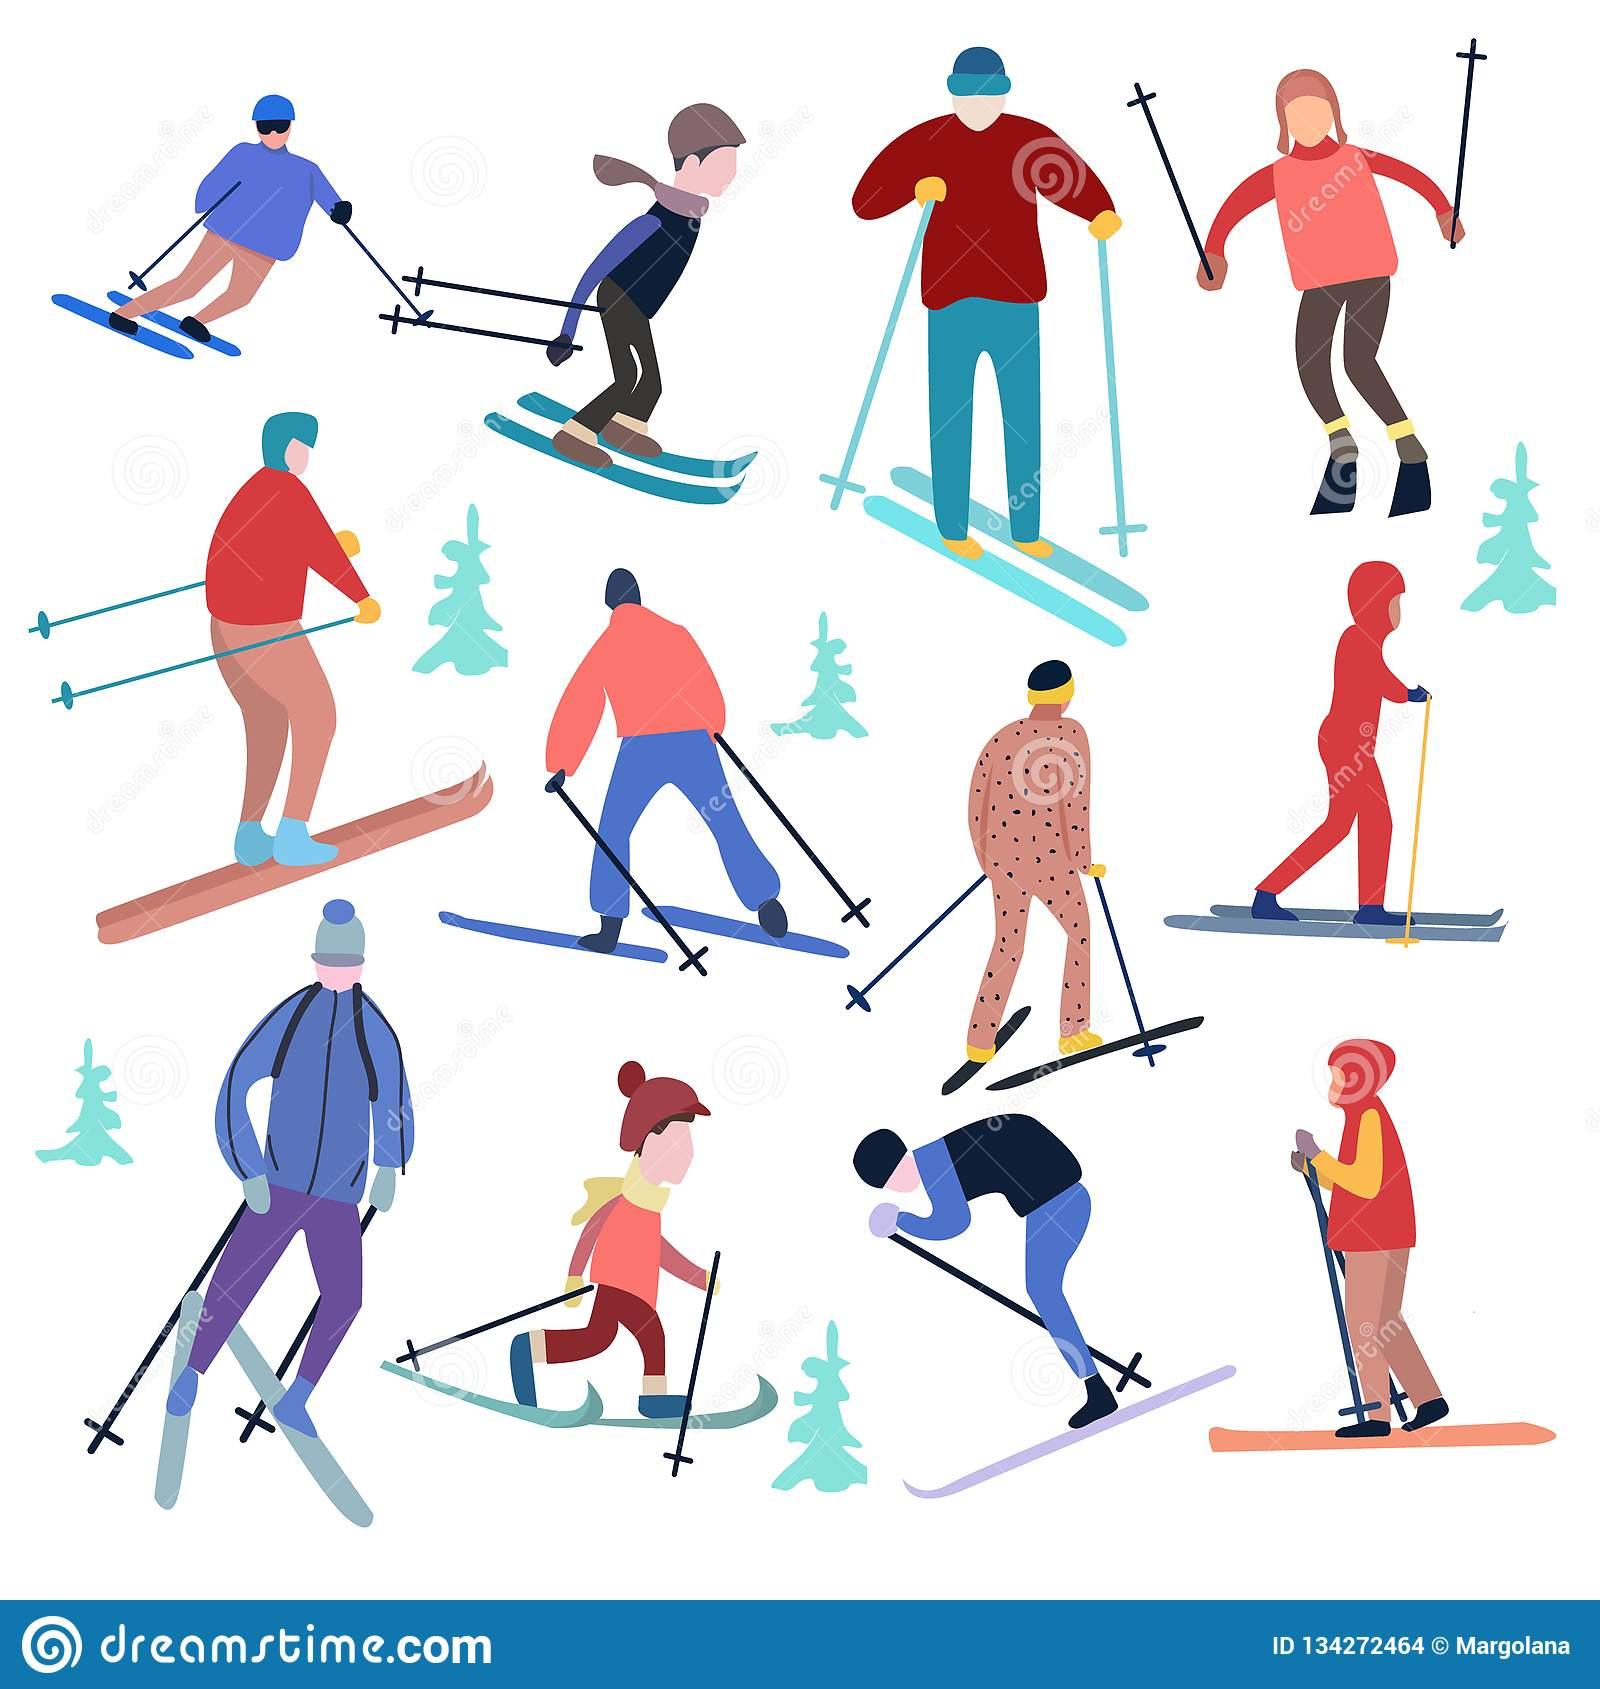 8e6b0d367e Vector illustration people dressed in winter clothing and skiing male and  female. Winter vacation concept. More similar stock illustrations